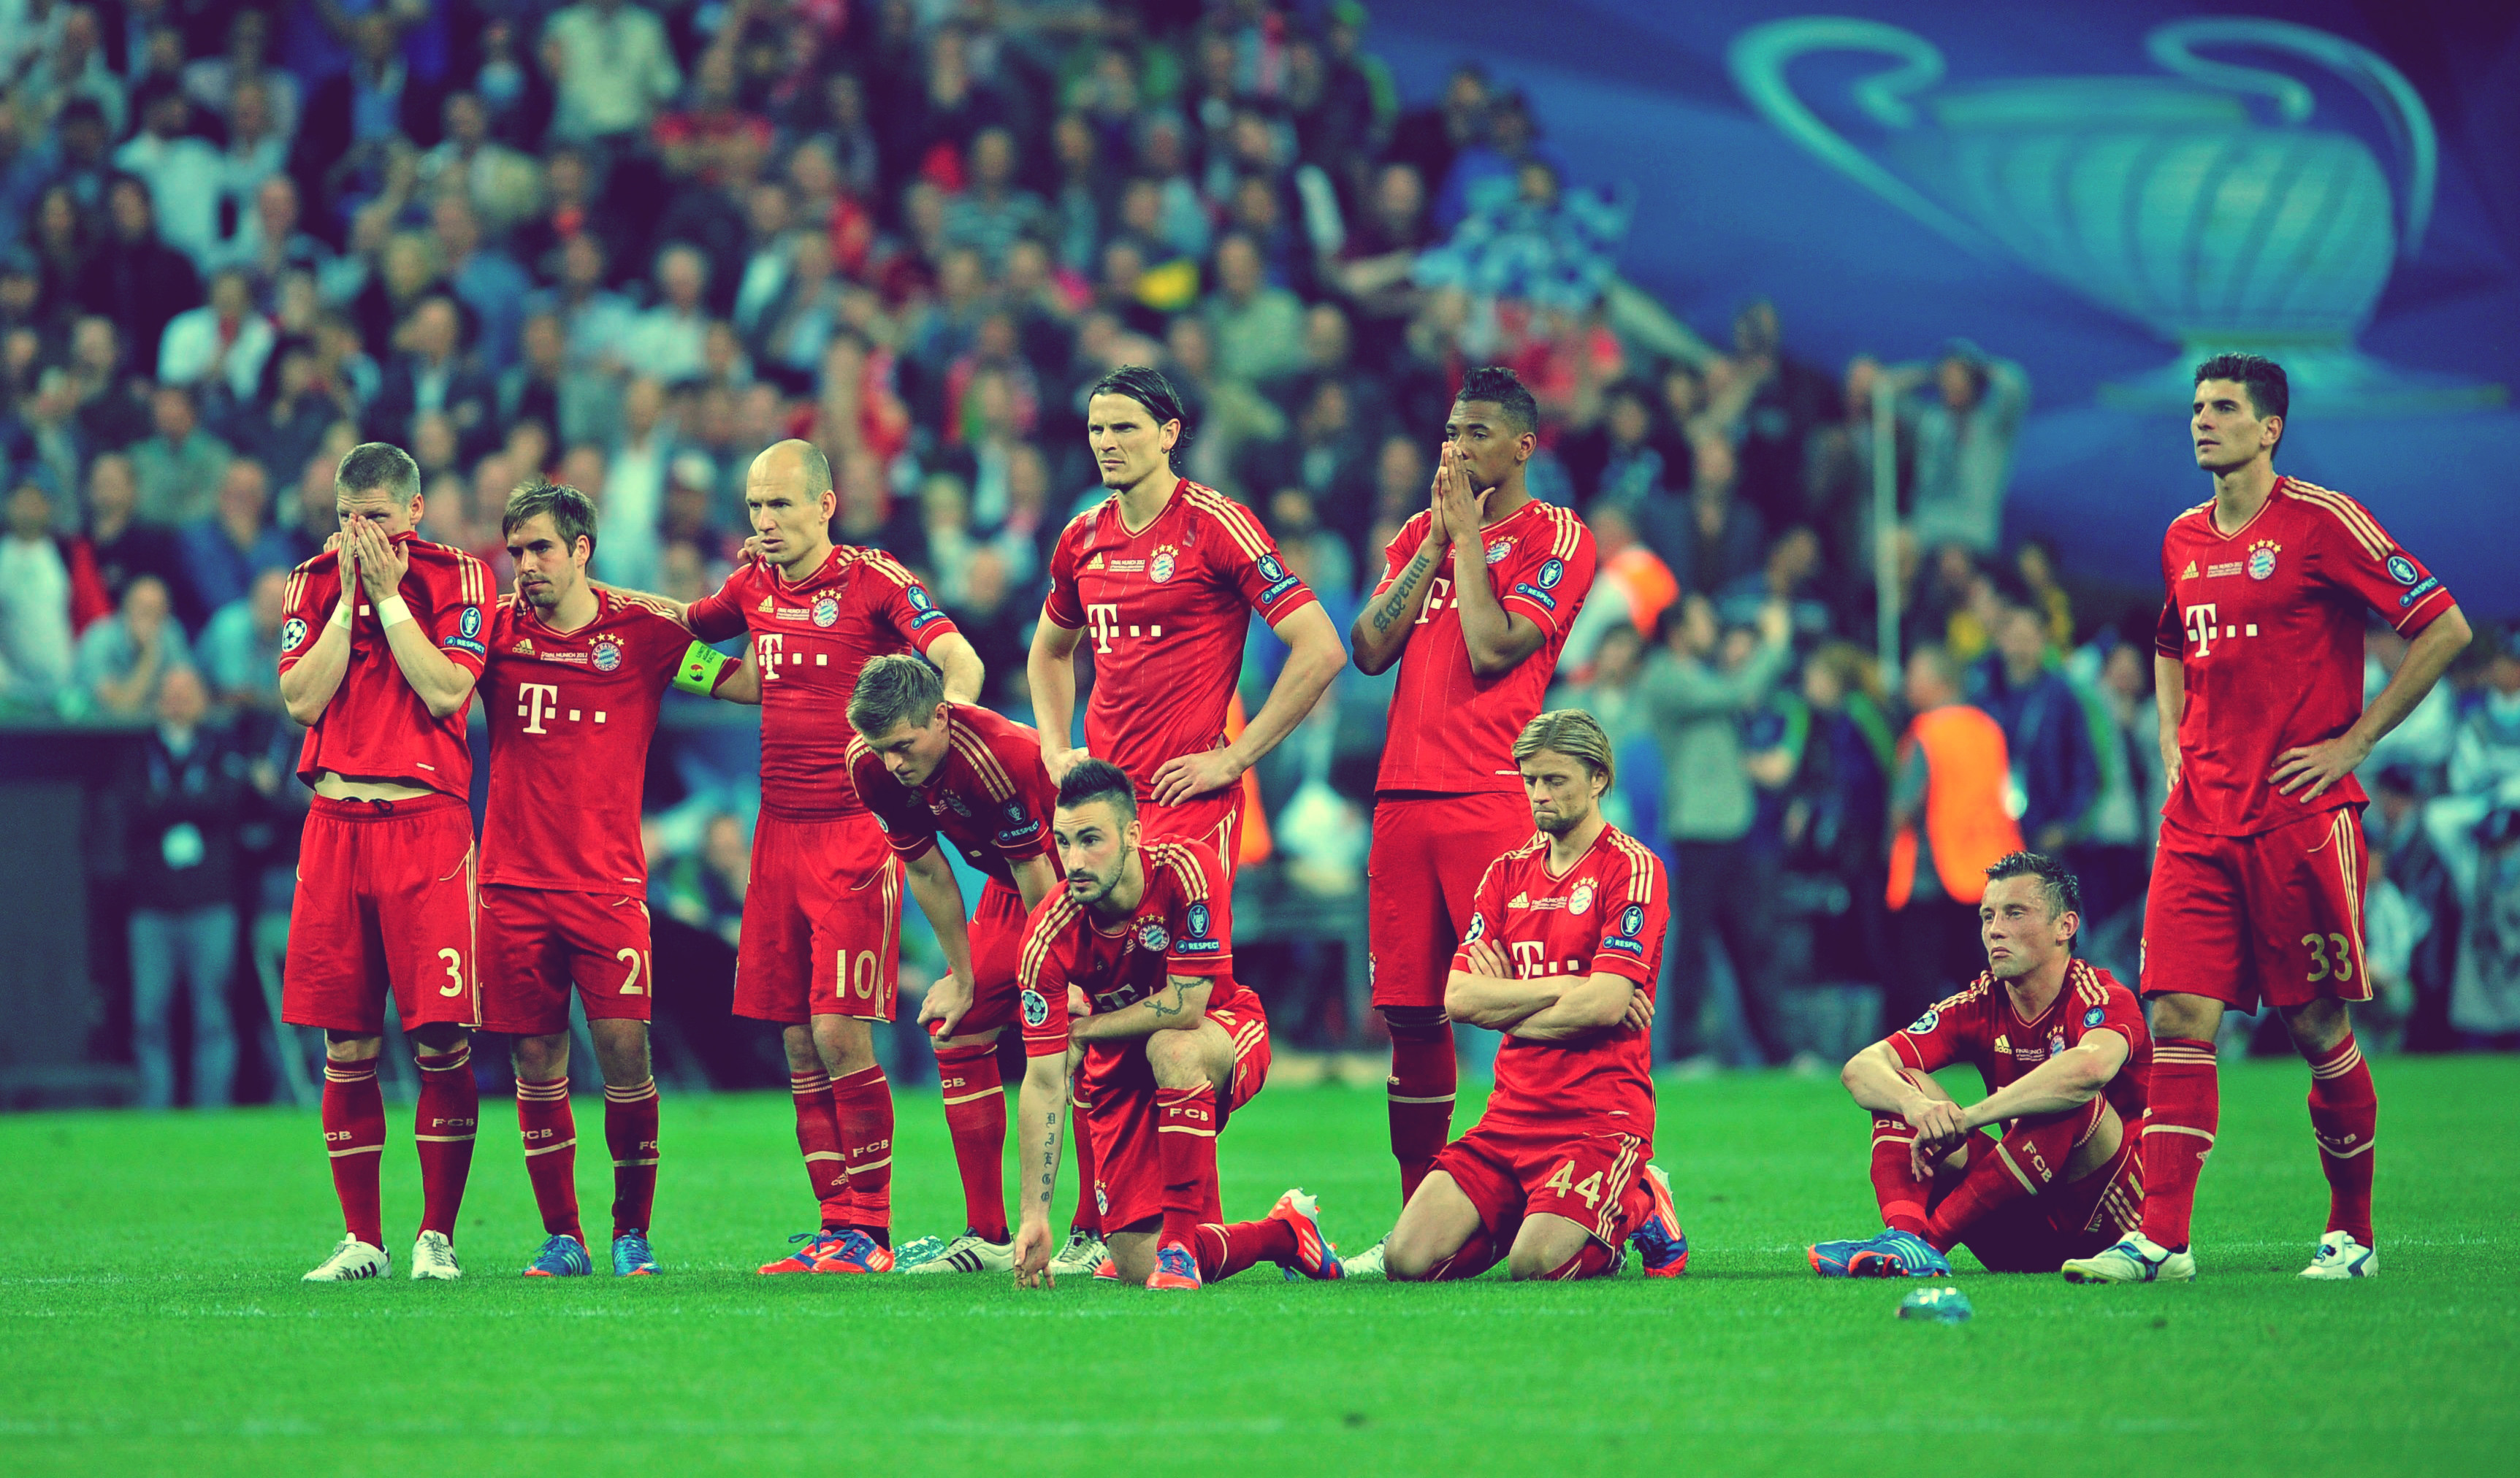 Fc Bayern Munich Wallpapers ·① WallpaperTag